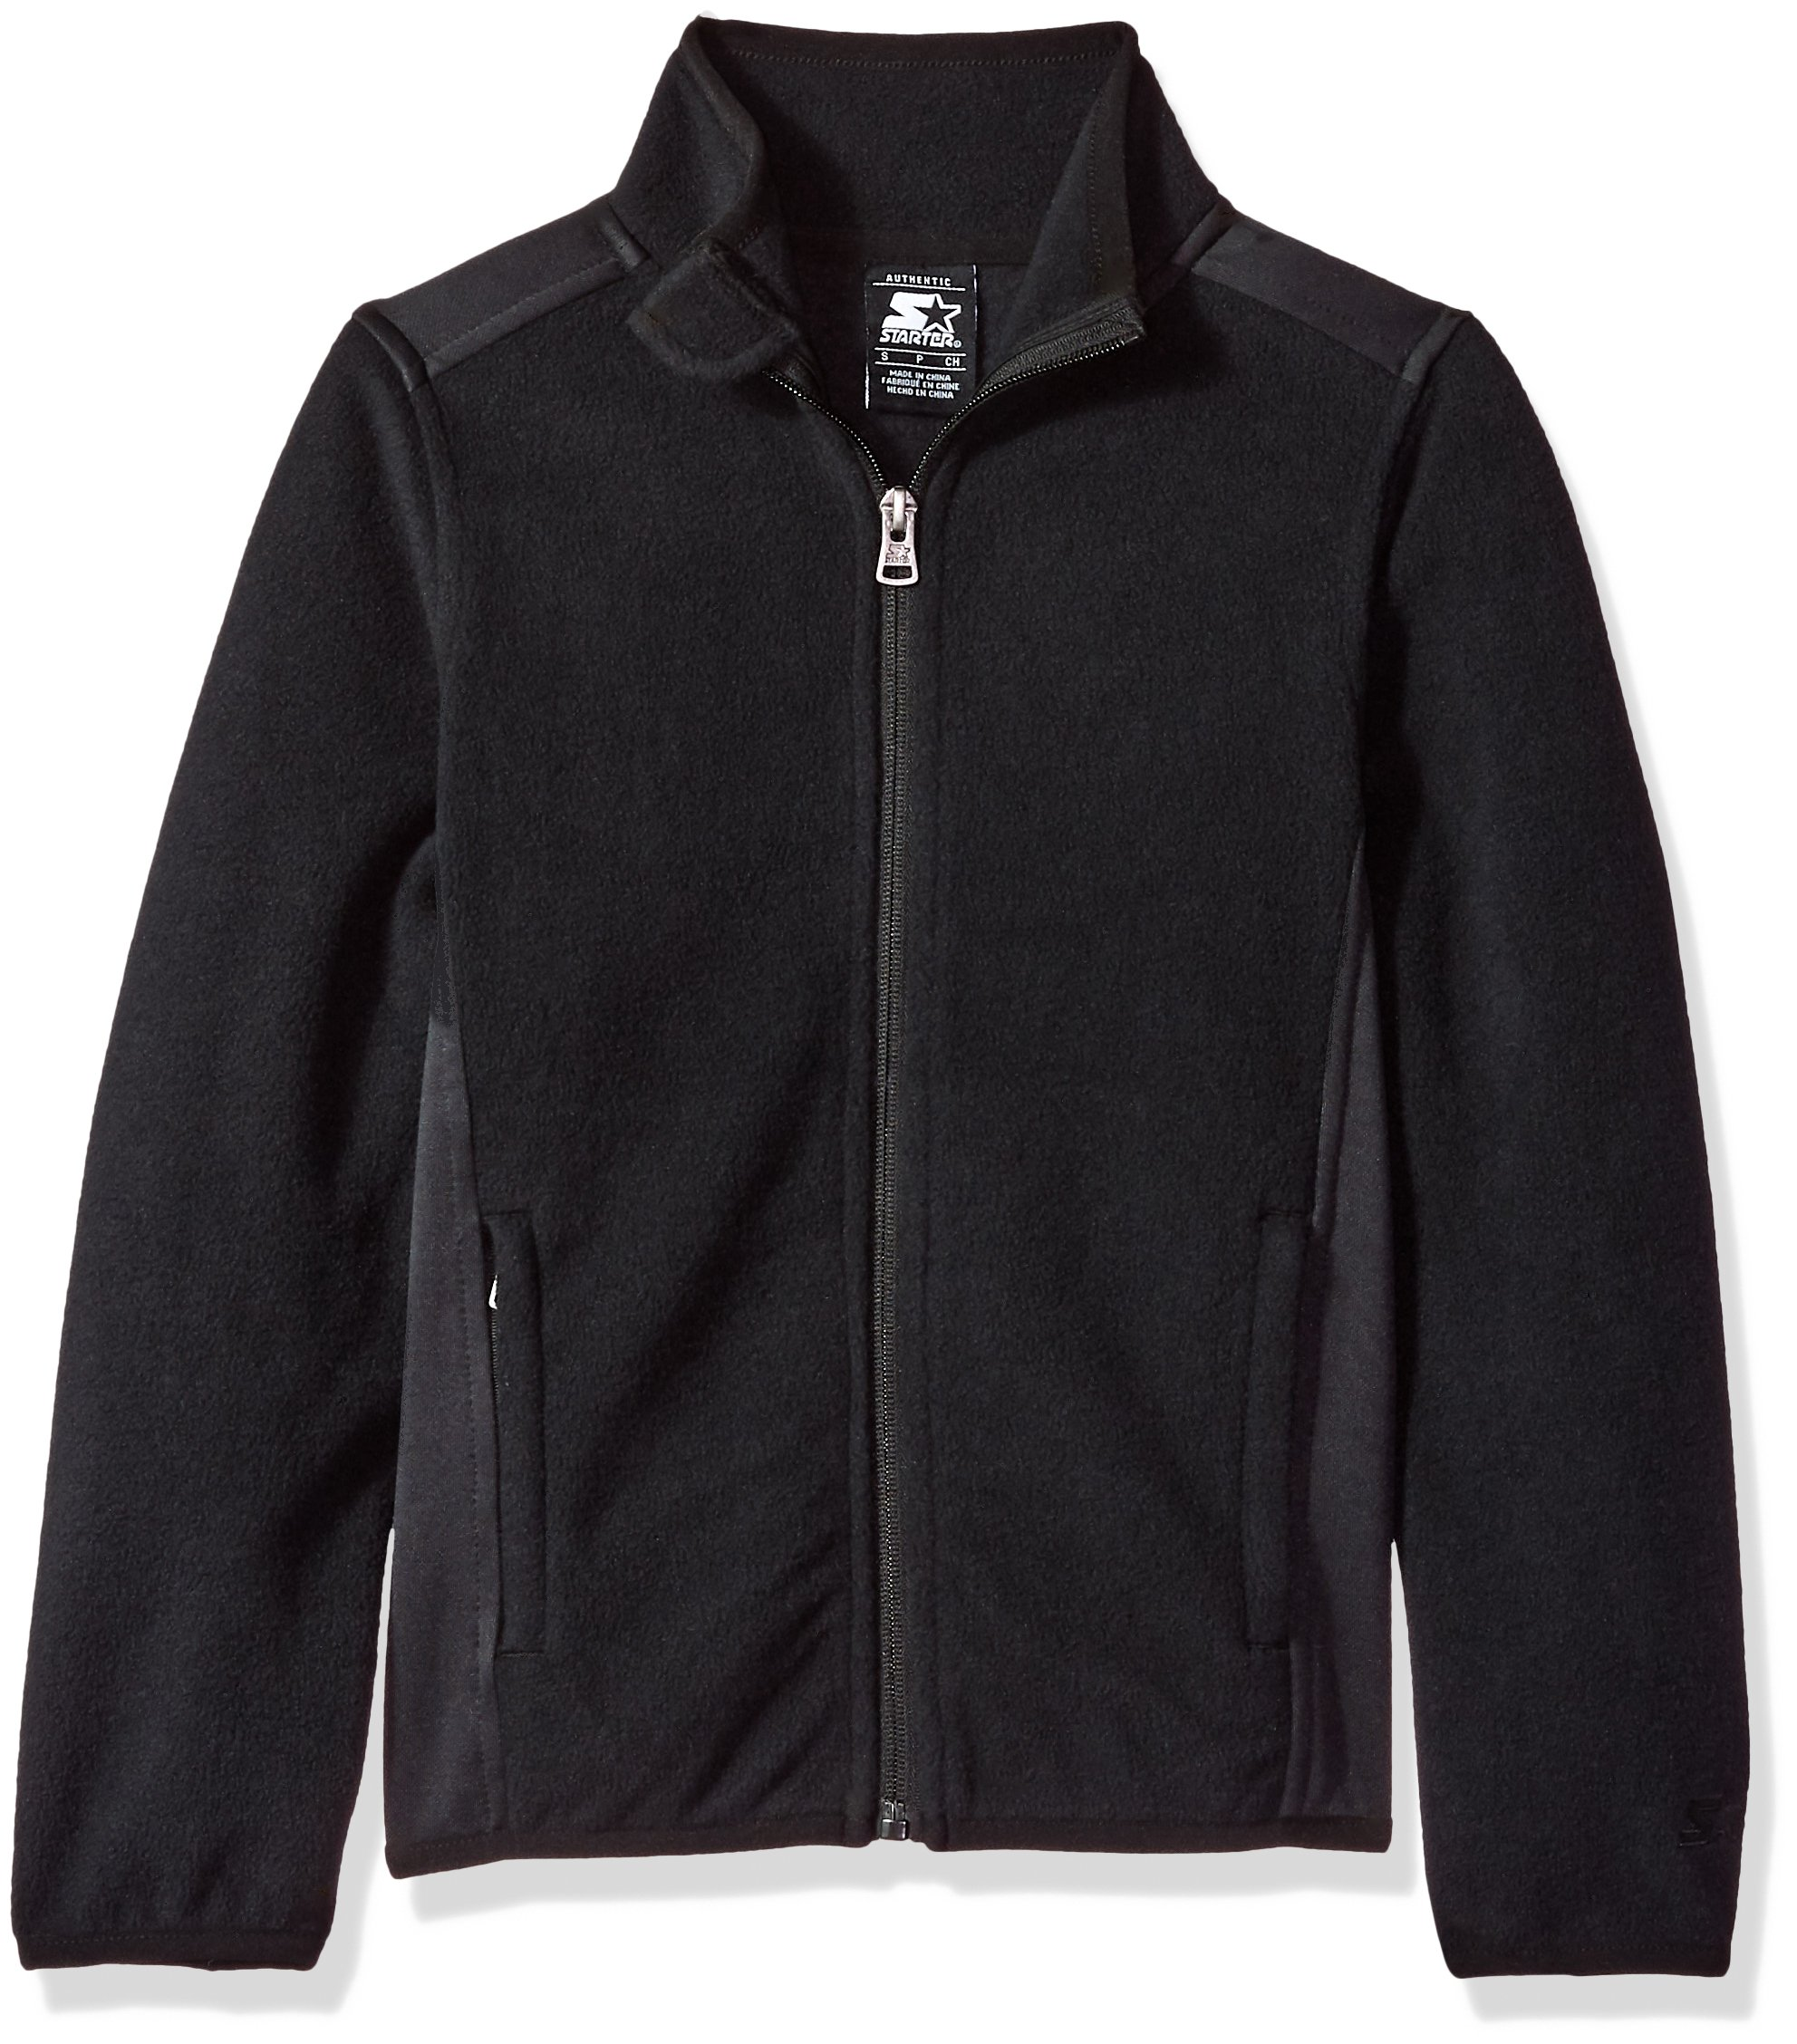 Starter Girls' Polar Fleece Jacket, Prime Exclusive, Black, L (10/12)